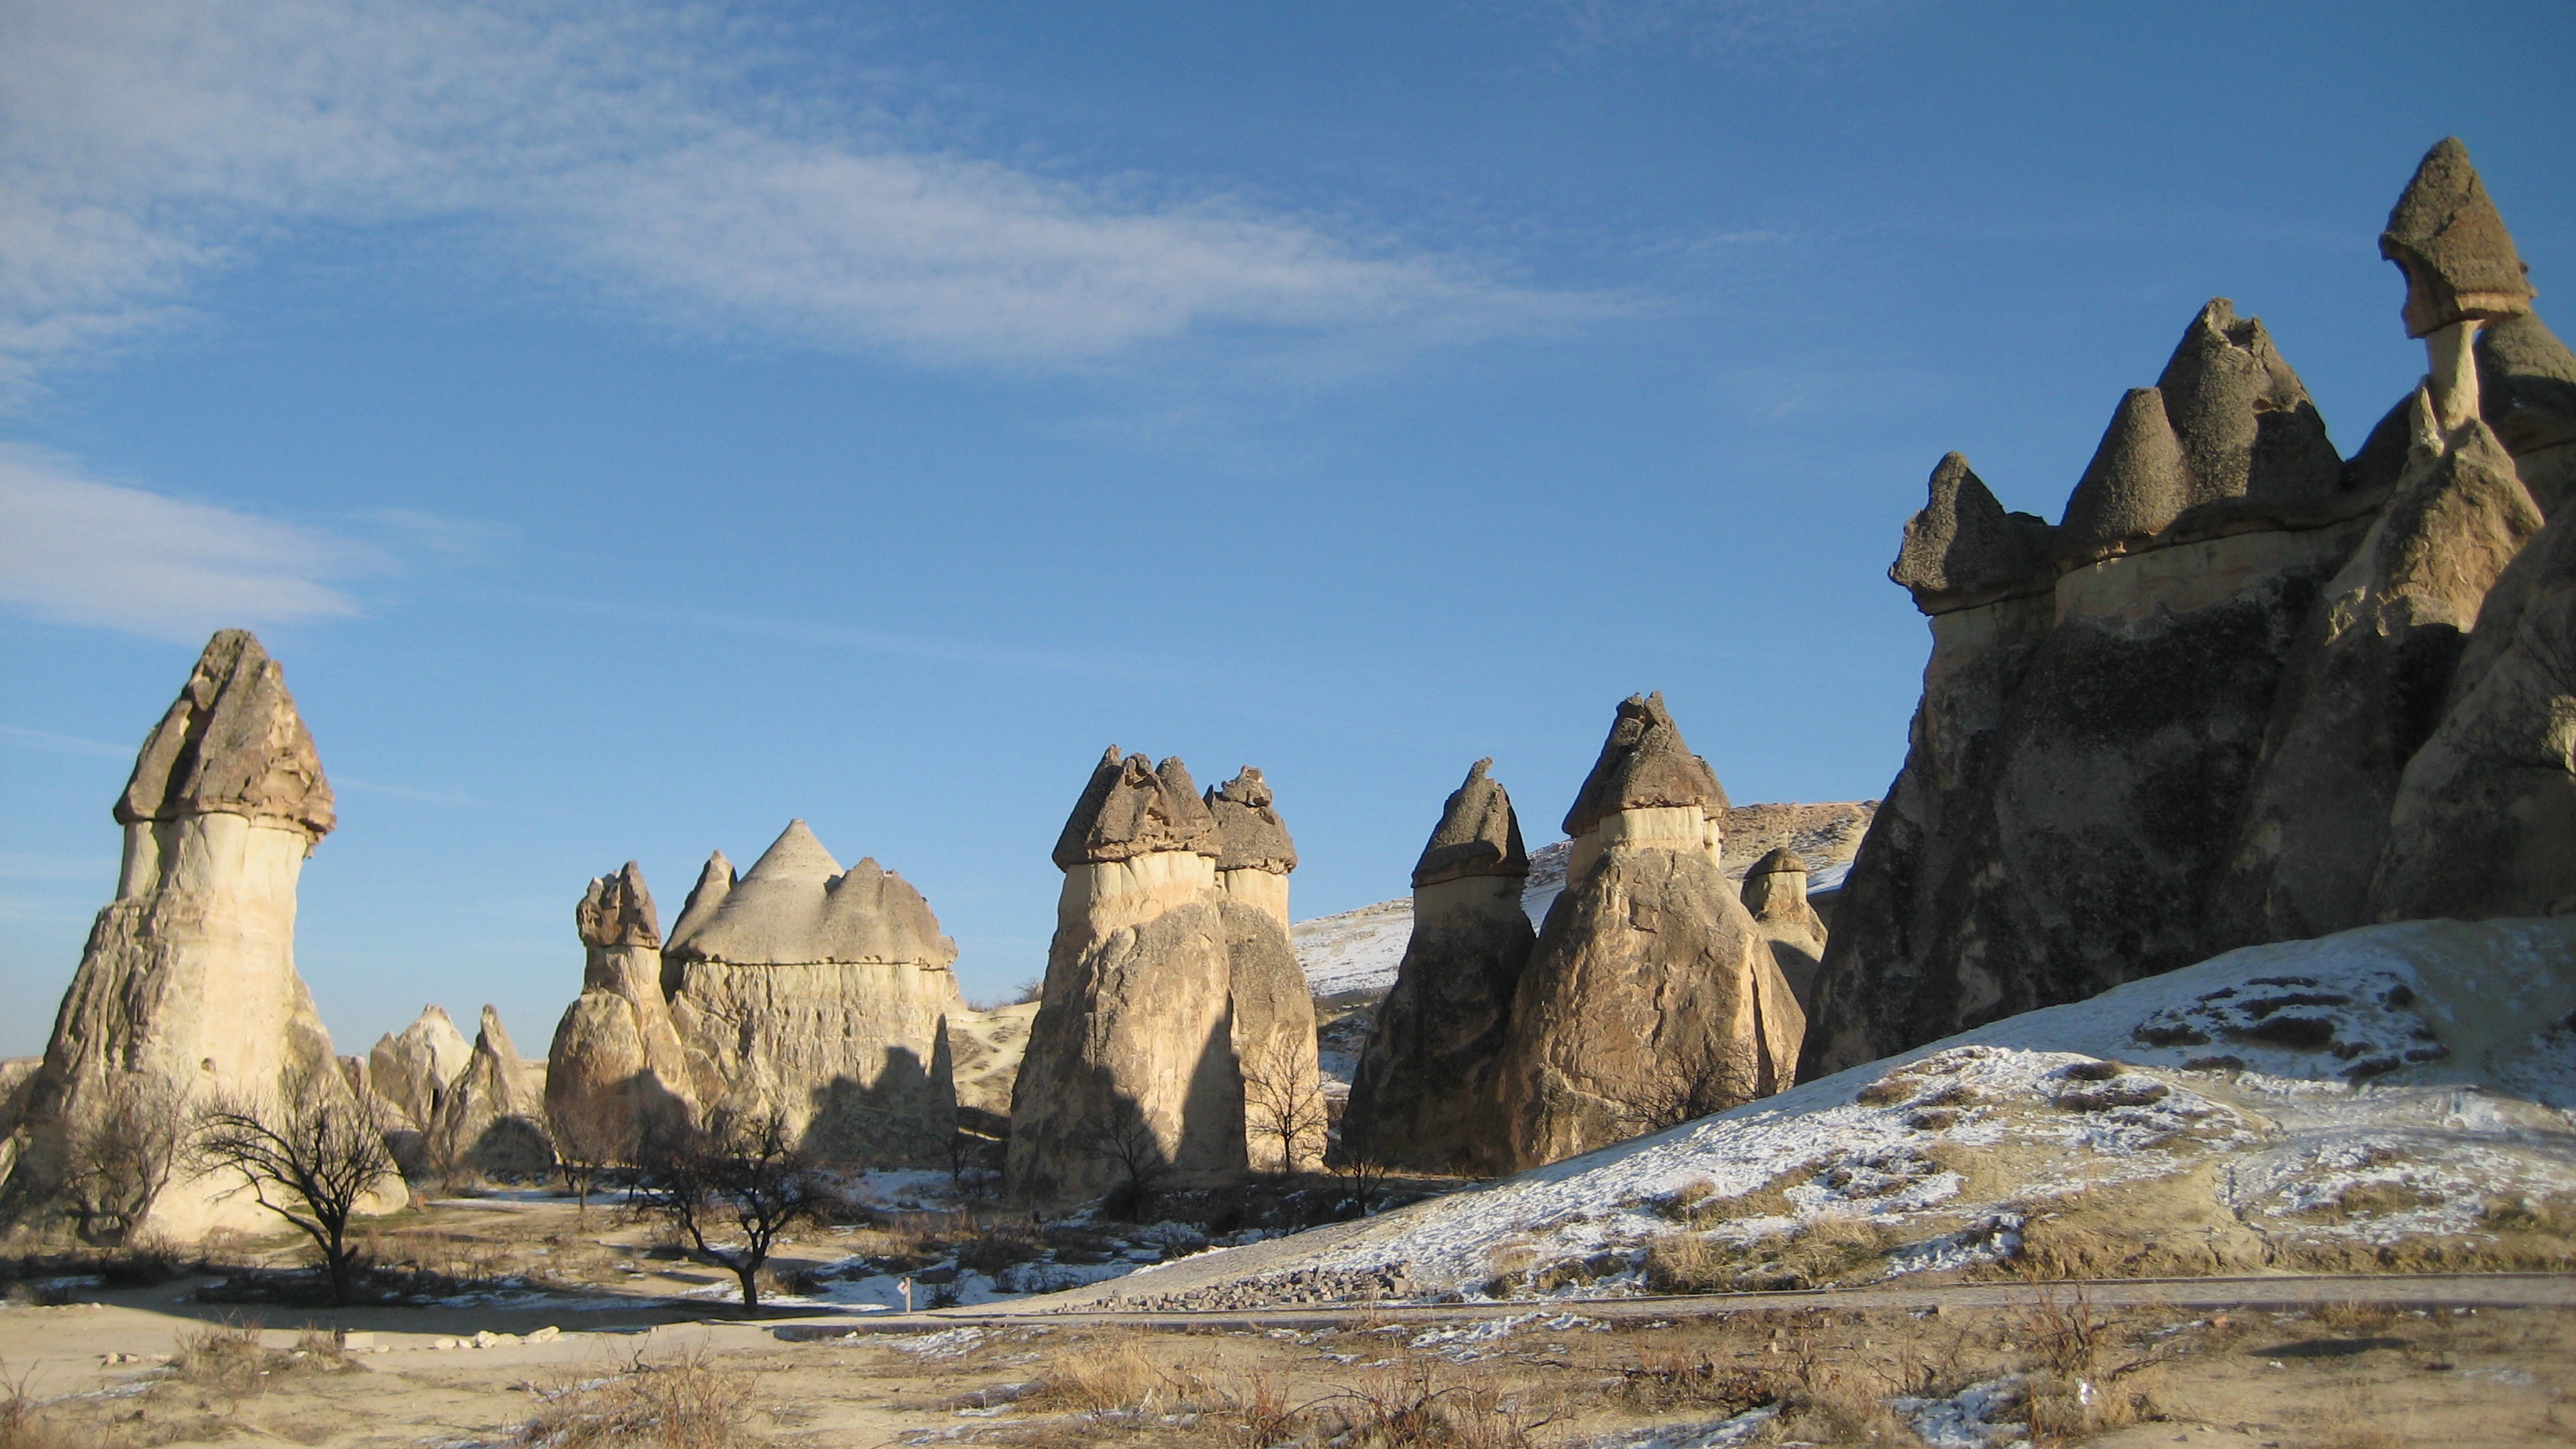 Göreme National Park - National Park in Turkey - Thousand Wonders